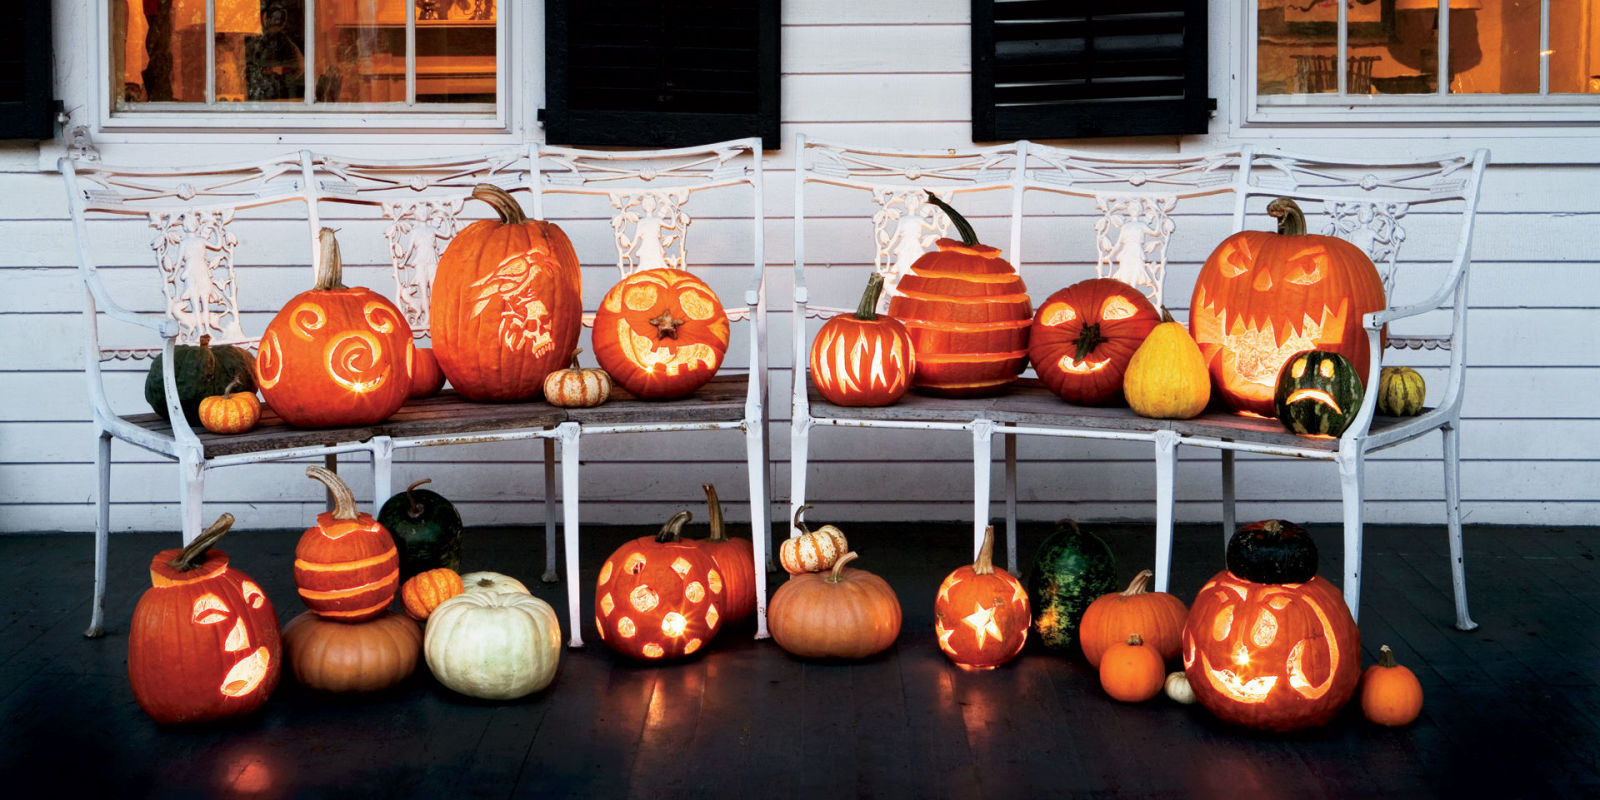 How to Carve a Pumpkin for Halloween - Pumpkin Carving Tips